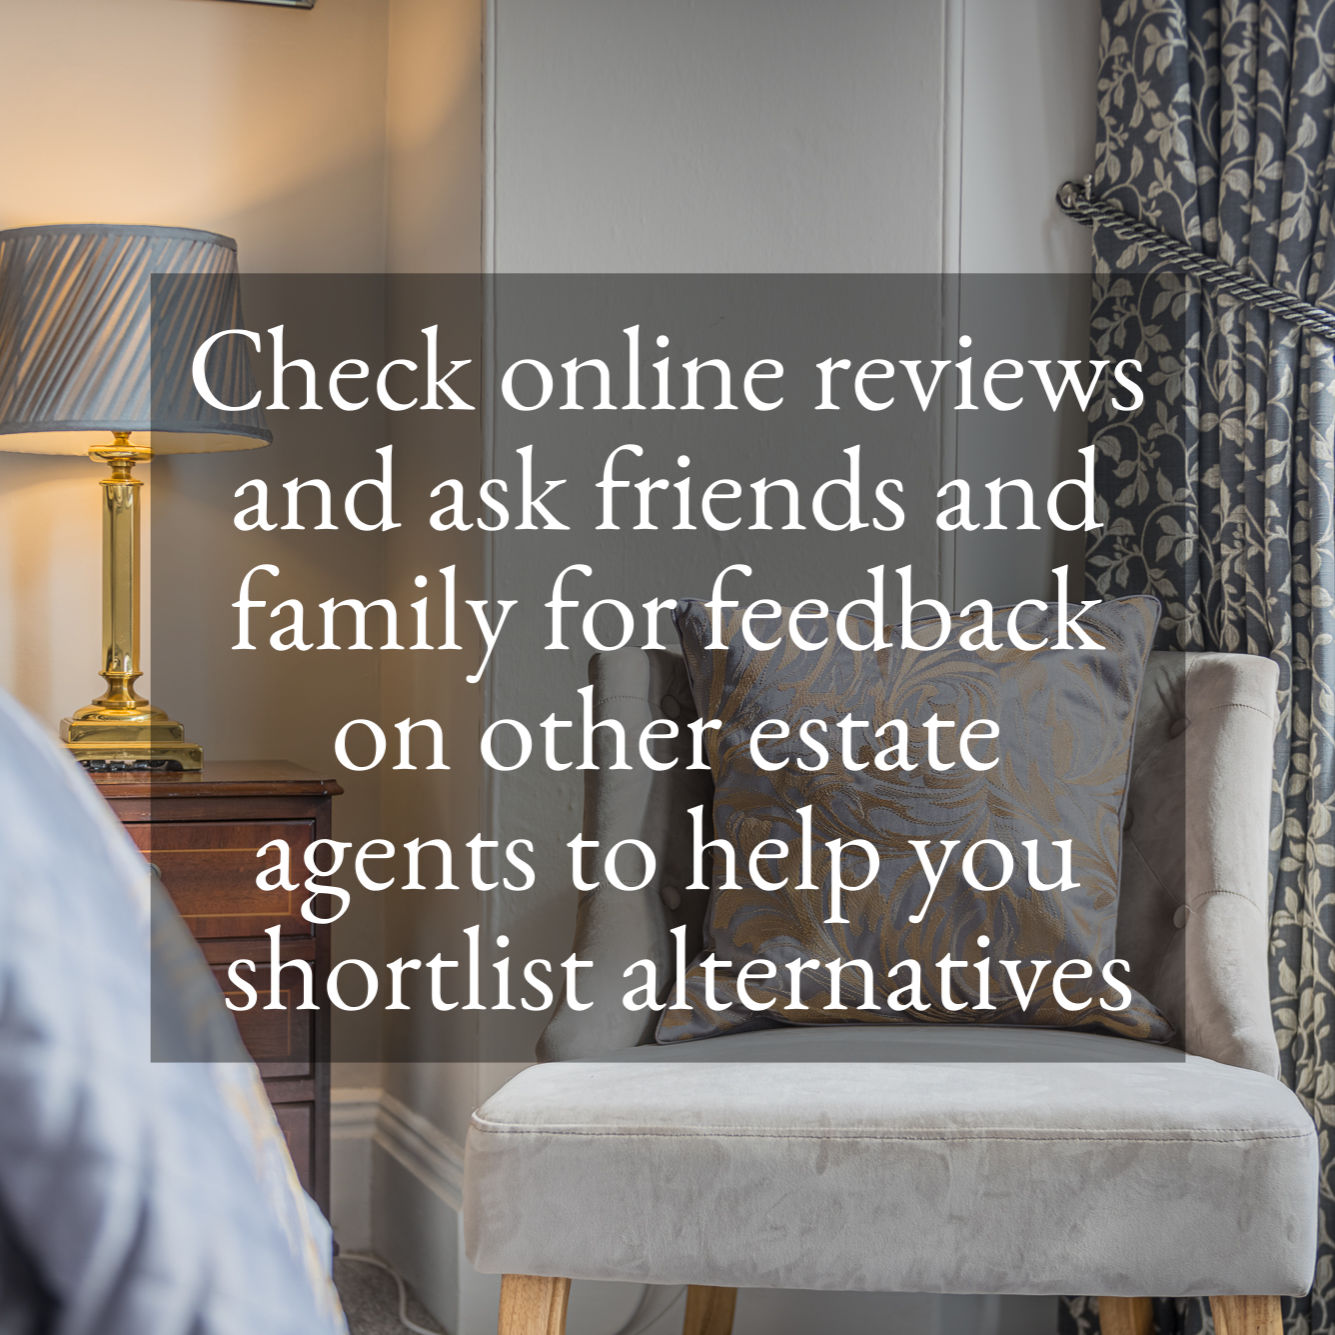 tg3-check-online-reviews-and-ask-friends-and-family-for-feedback